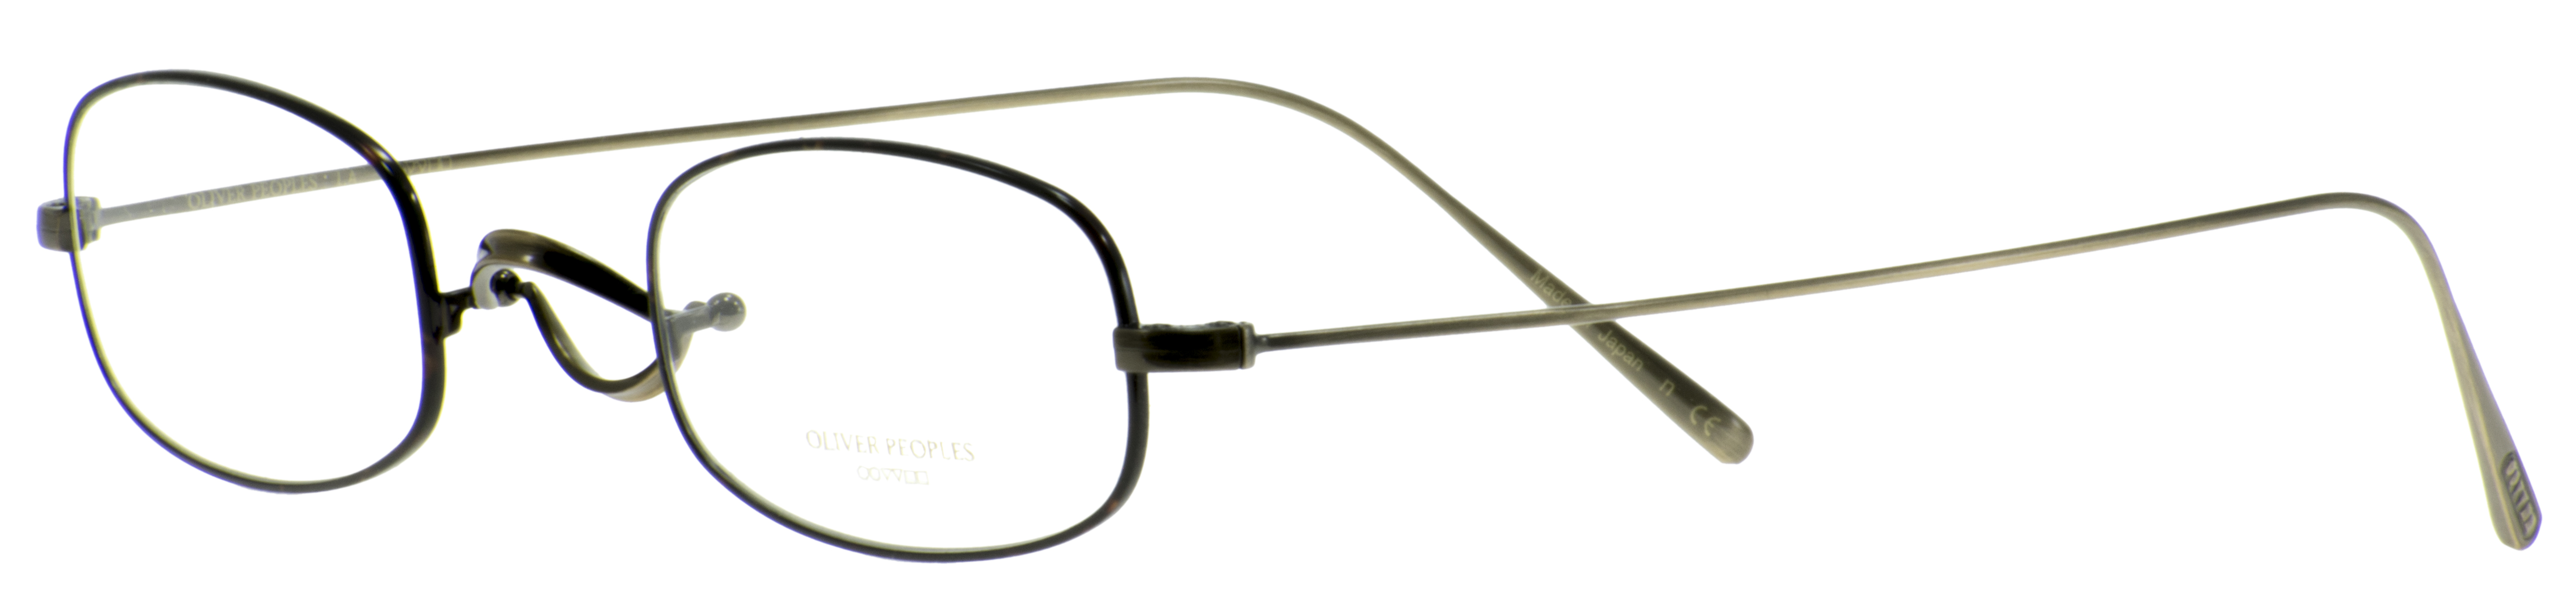 OLIVER PEOPLES EDESON 5284 ¥43,000 44 02